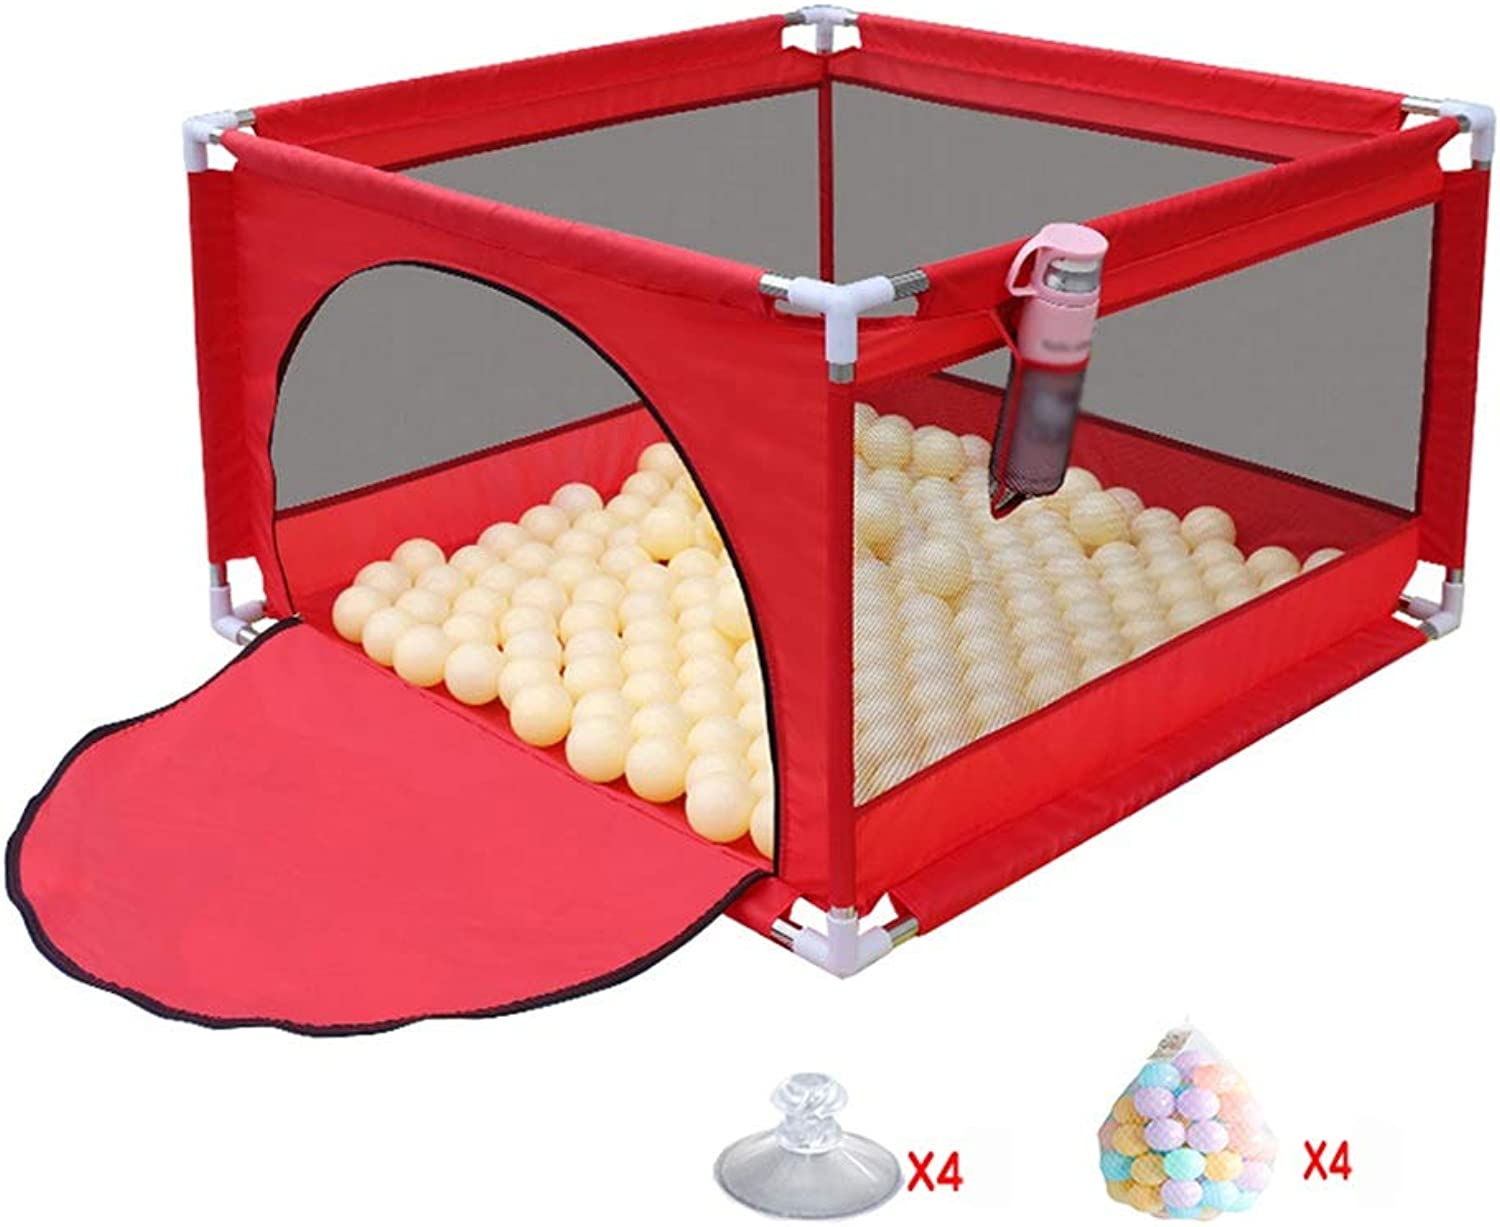 CHAXIA Baby playpen Safety Fence Toddler Fences Household Ball Pool Toy Guard Fences Red, 2 Specifications (color   A, Size   105x105x66cm)